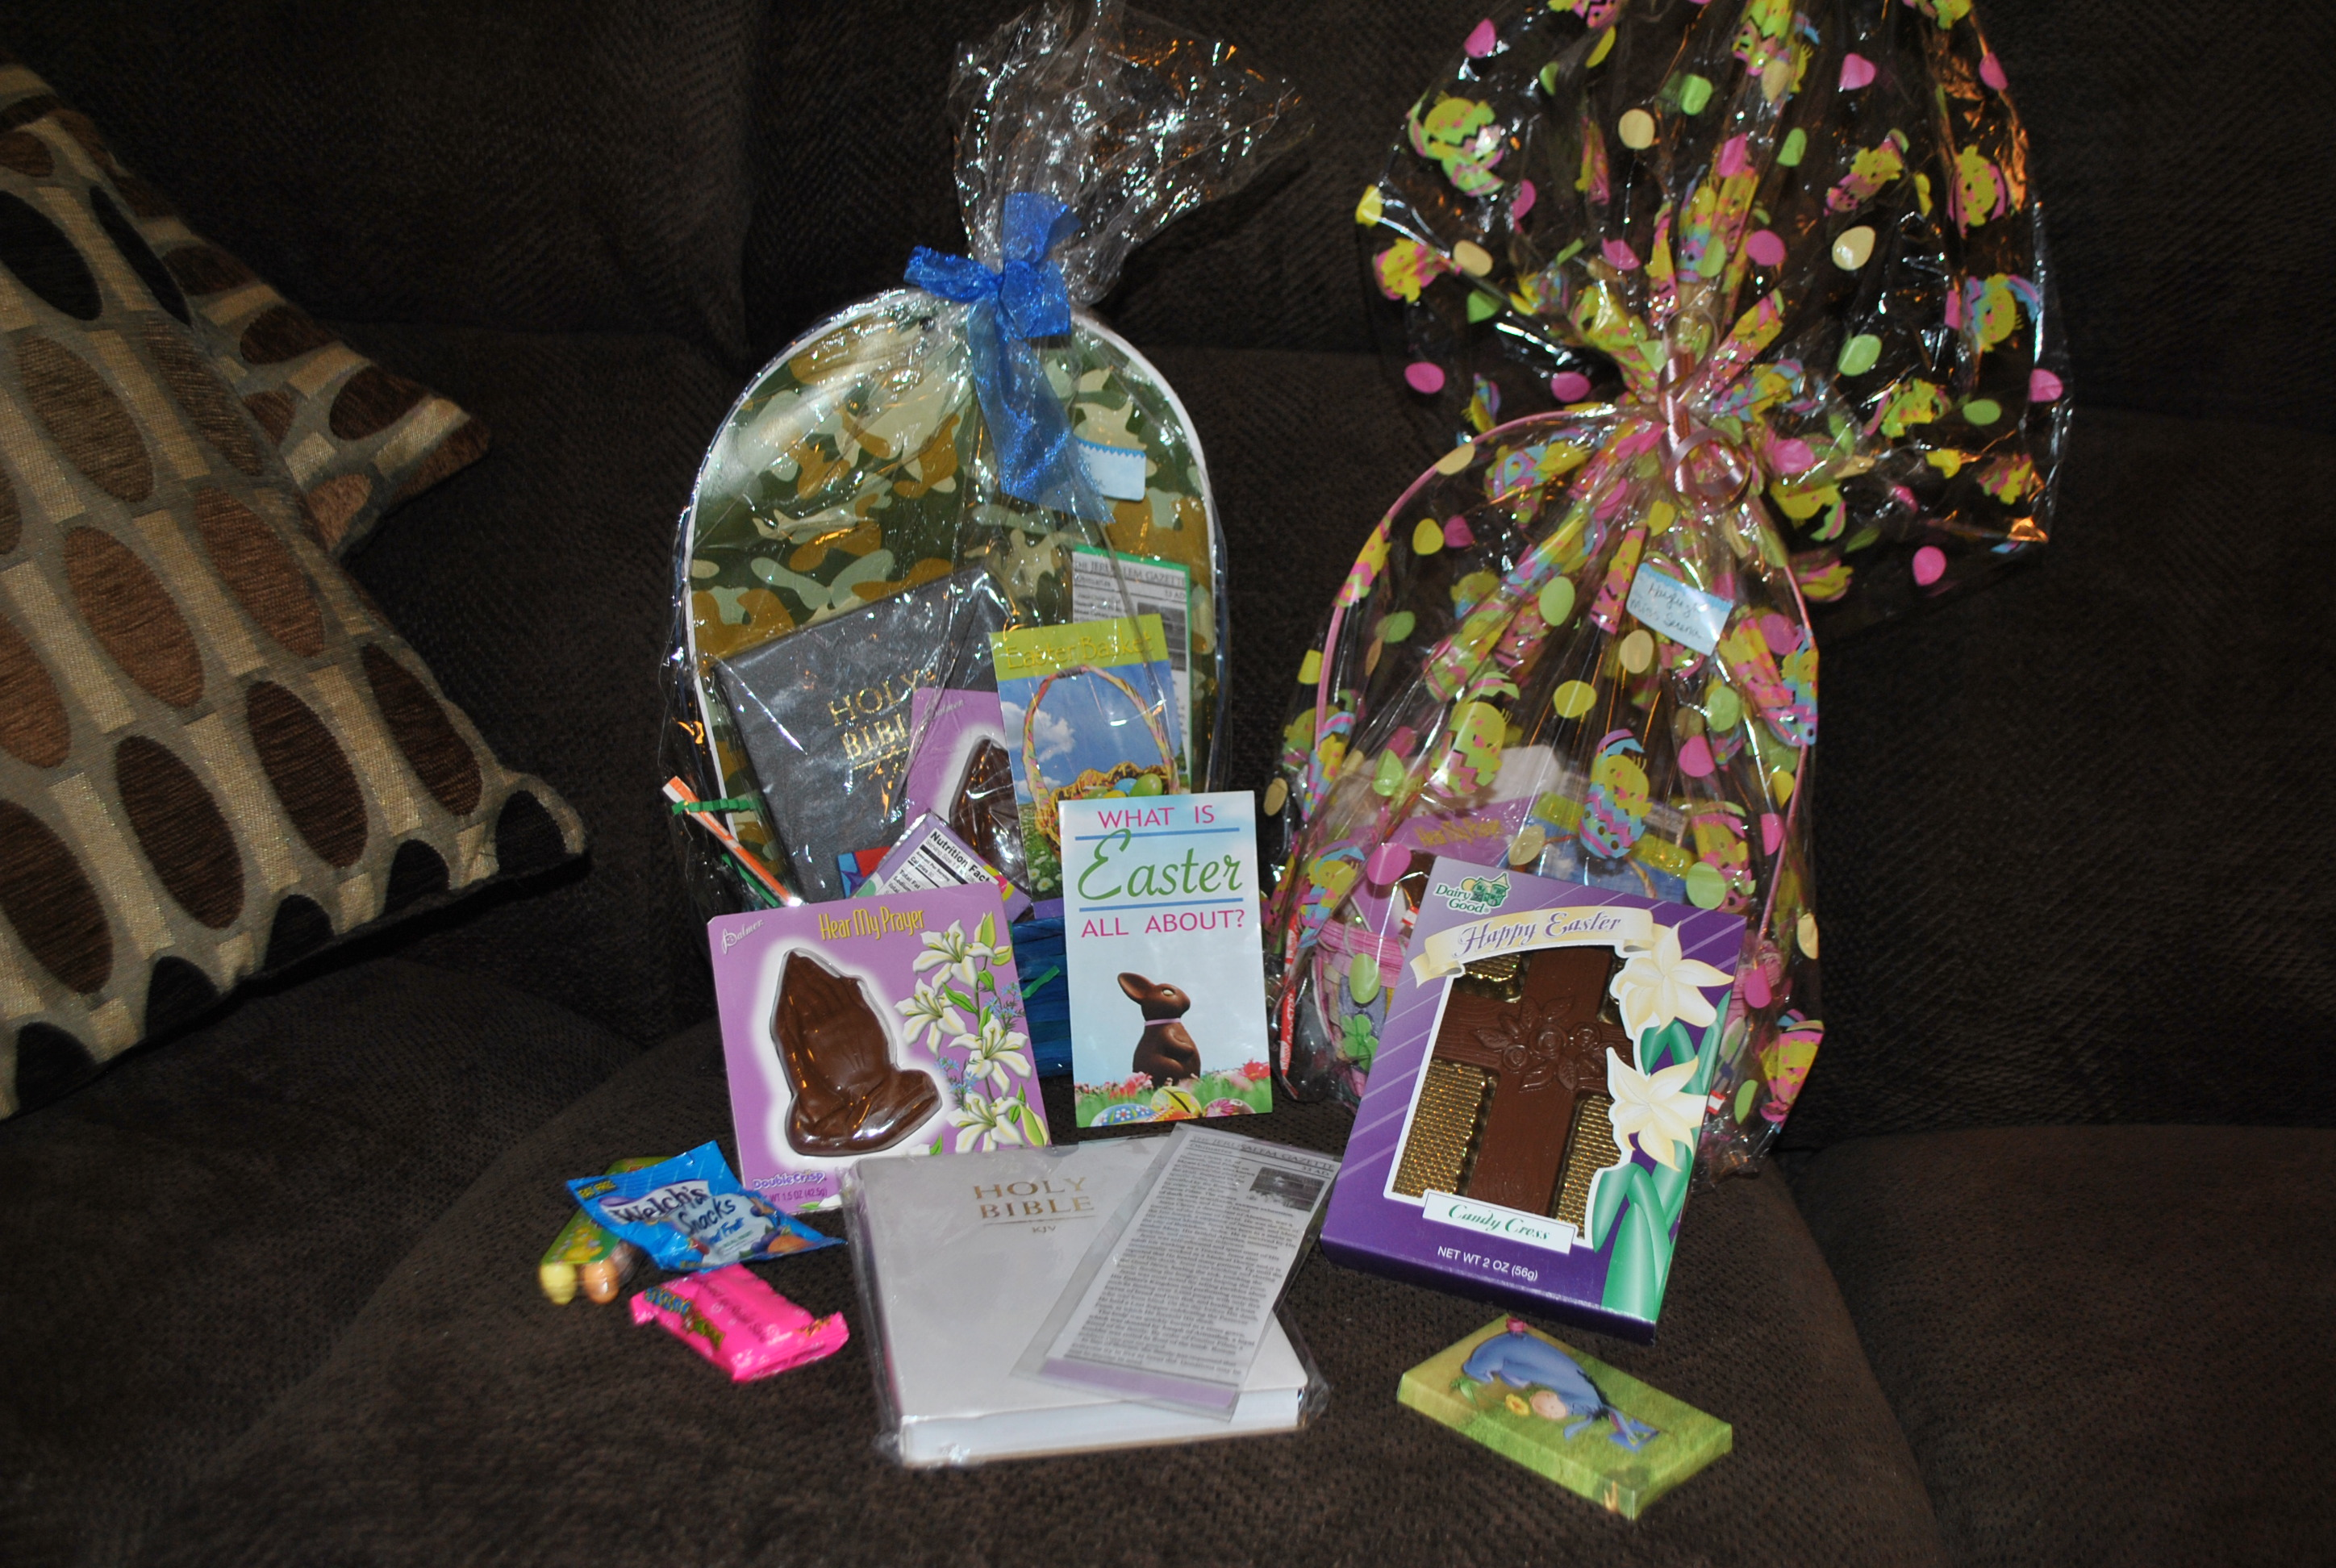 Easter basket ideas that incorporate the true meaning of easter jesus i wanted them to get a easter basket and enjoy some candy and at the same time have jesus shine through as the sole purpose for easter and not highlight negle Images